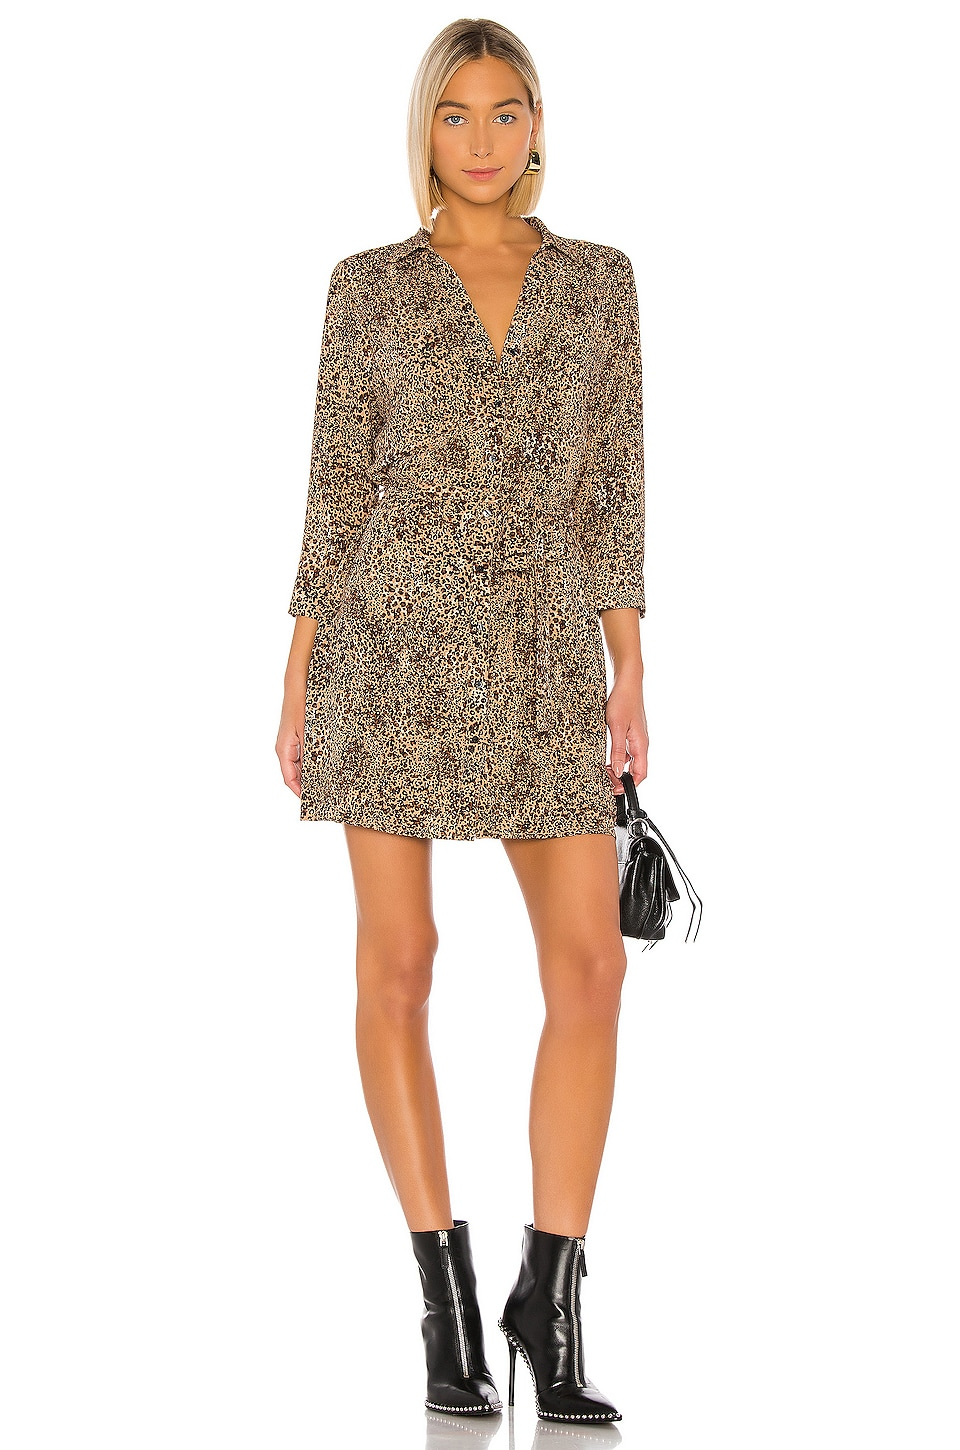 Leopard Muse Patch Pocket Shirt Dress             1. STATE                                                                                                                                         Sale price:                                                                       CA$ 56.75                                                                  Previous price:                                                                       CA$ 160.78 11